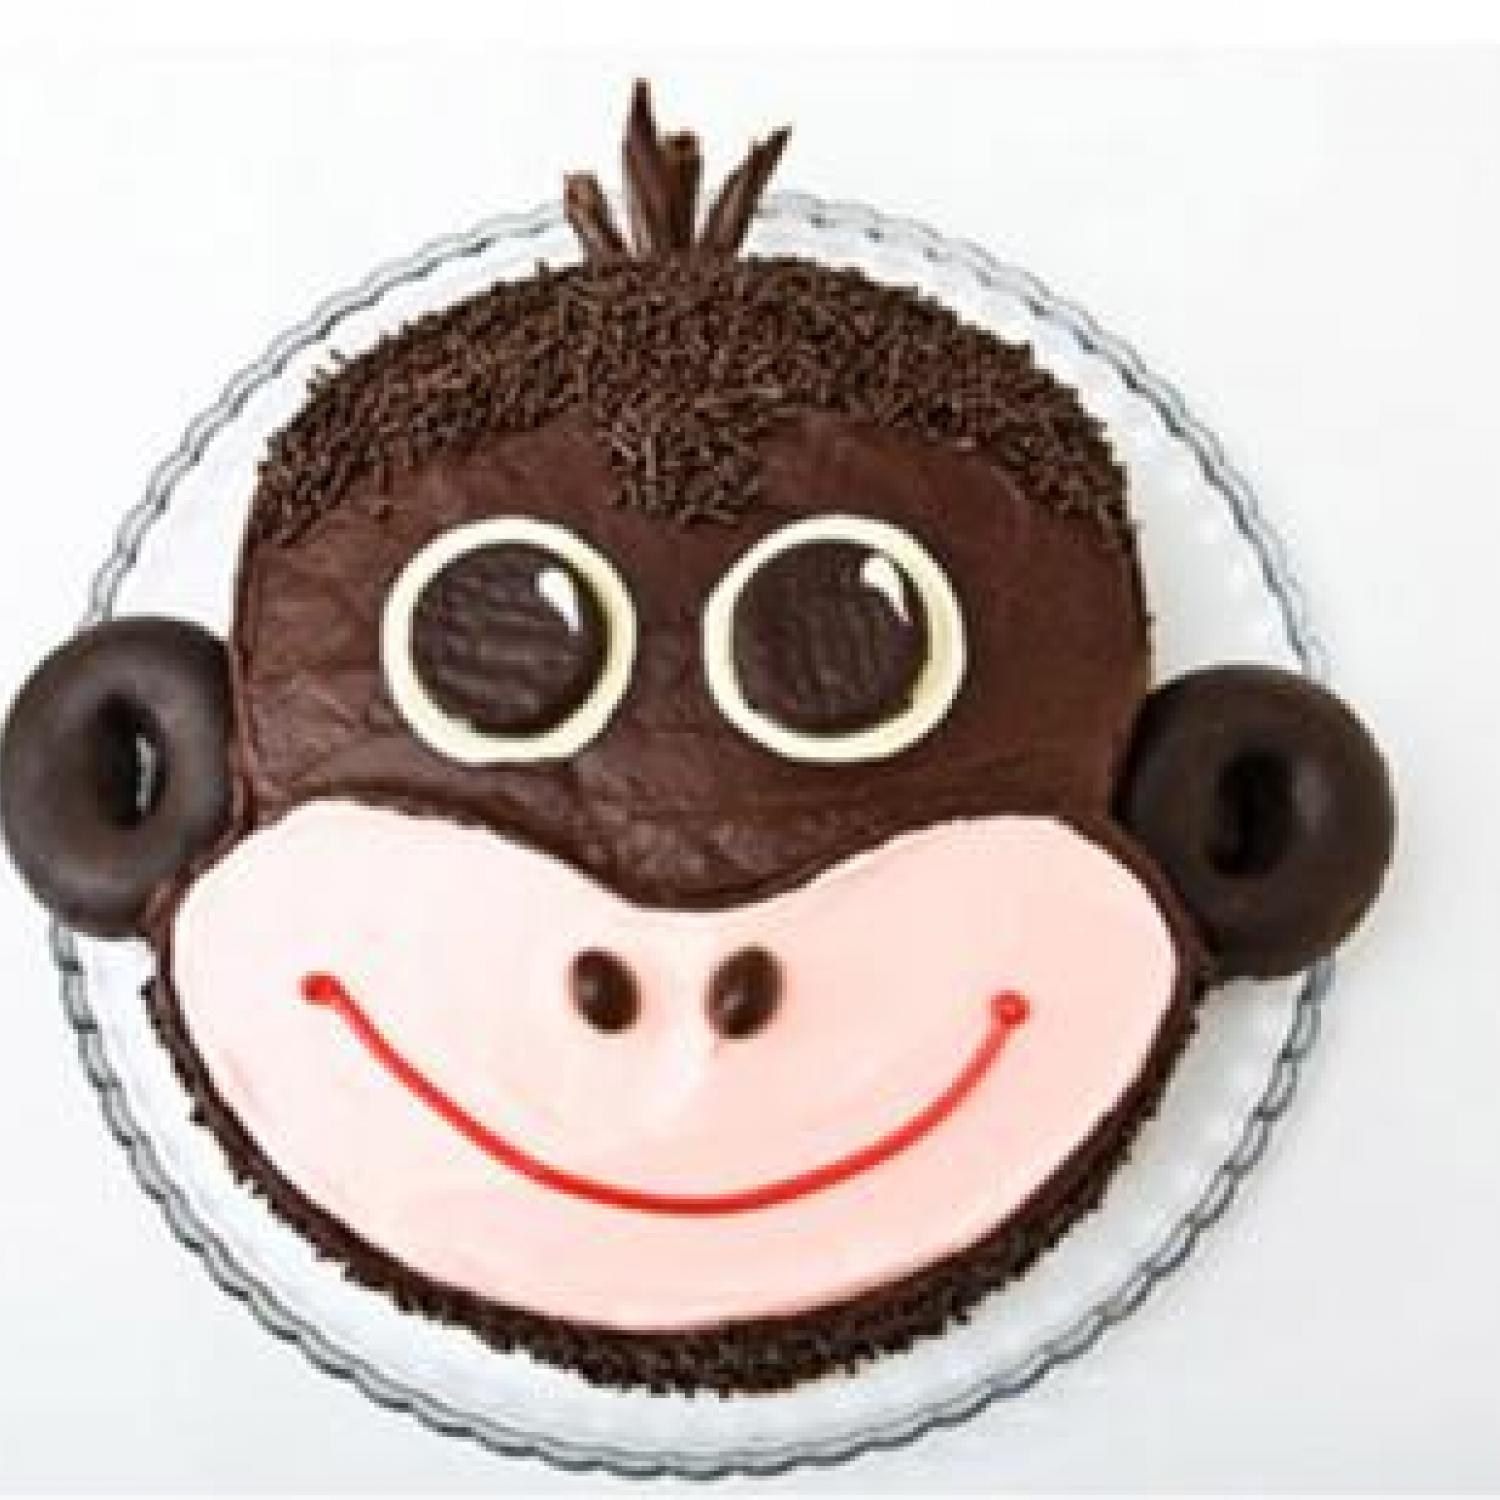 Monkey Cake Design Easy : Monkey Birthday Cake Design Parenting